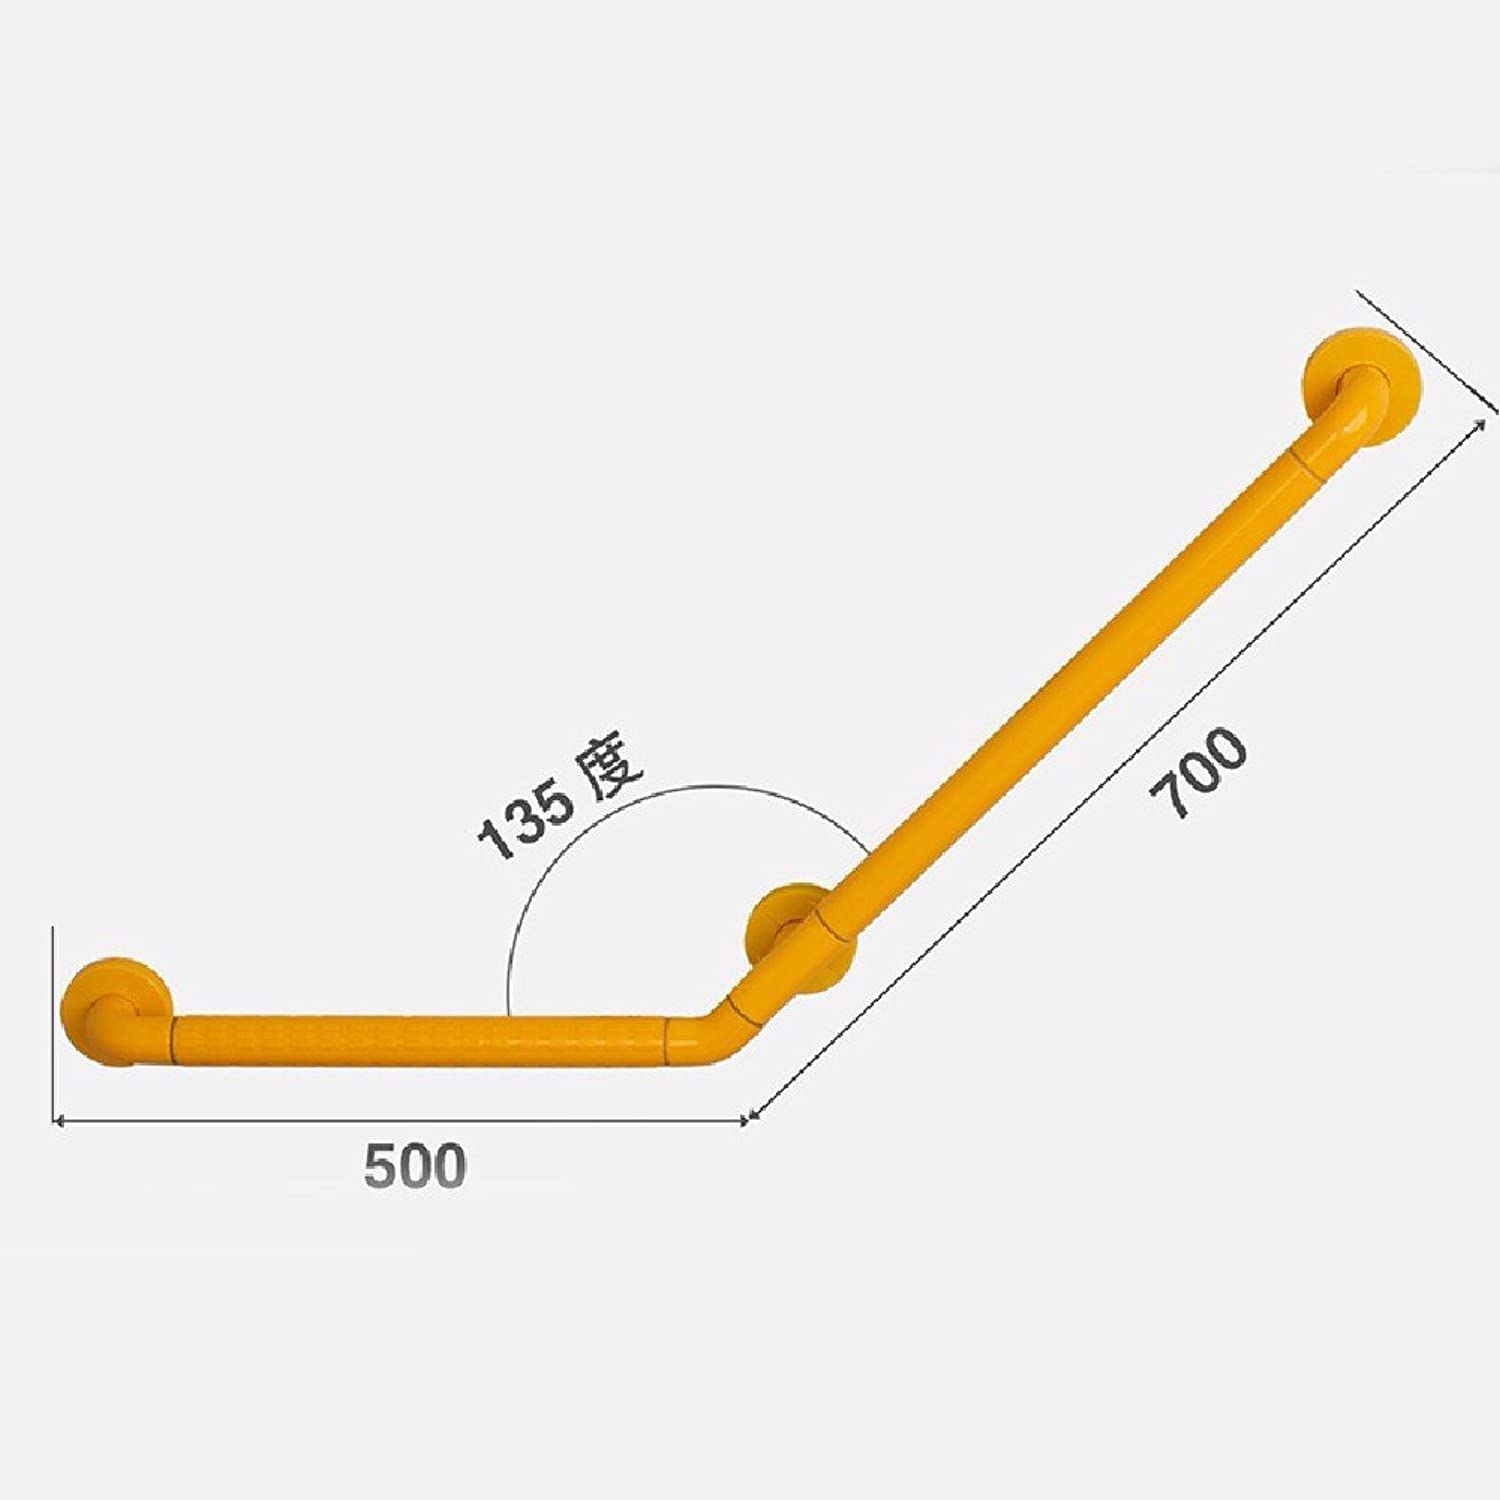 HQLCX Handrail Bathroom Toilet Old People Safe Disabled Hand Bathroom Bathroom Bathroom Anti-Skid Handle Barrier Free Handrail,50 70Cm,Yellow